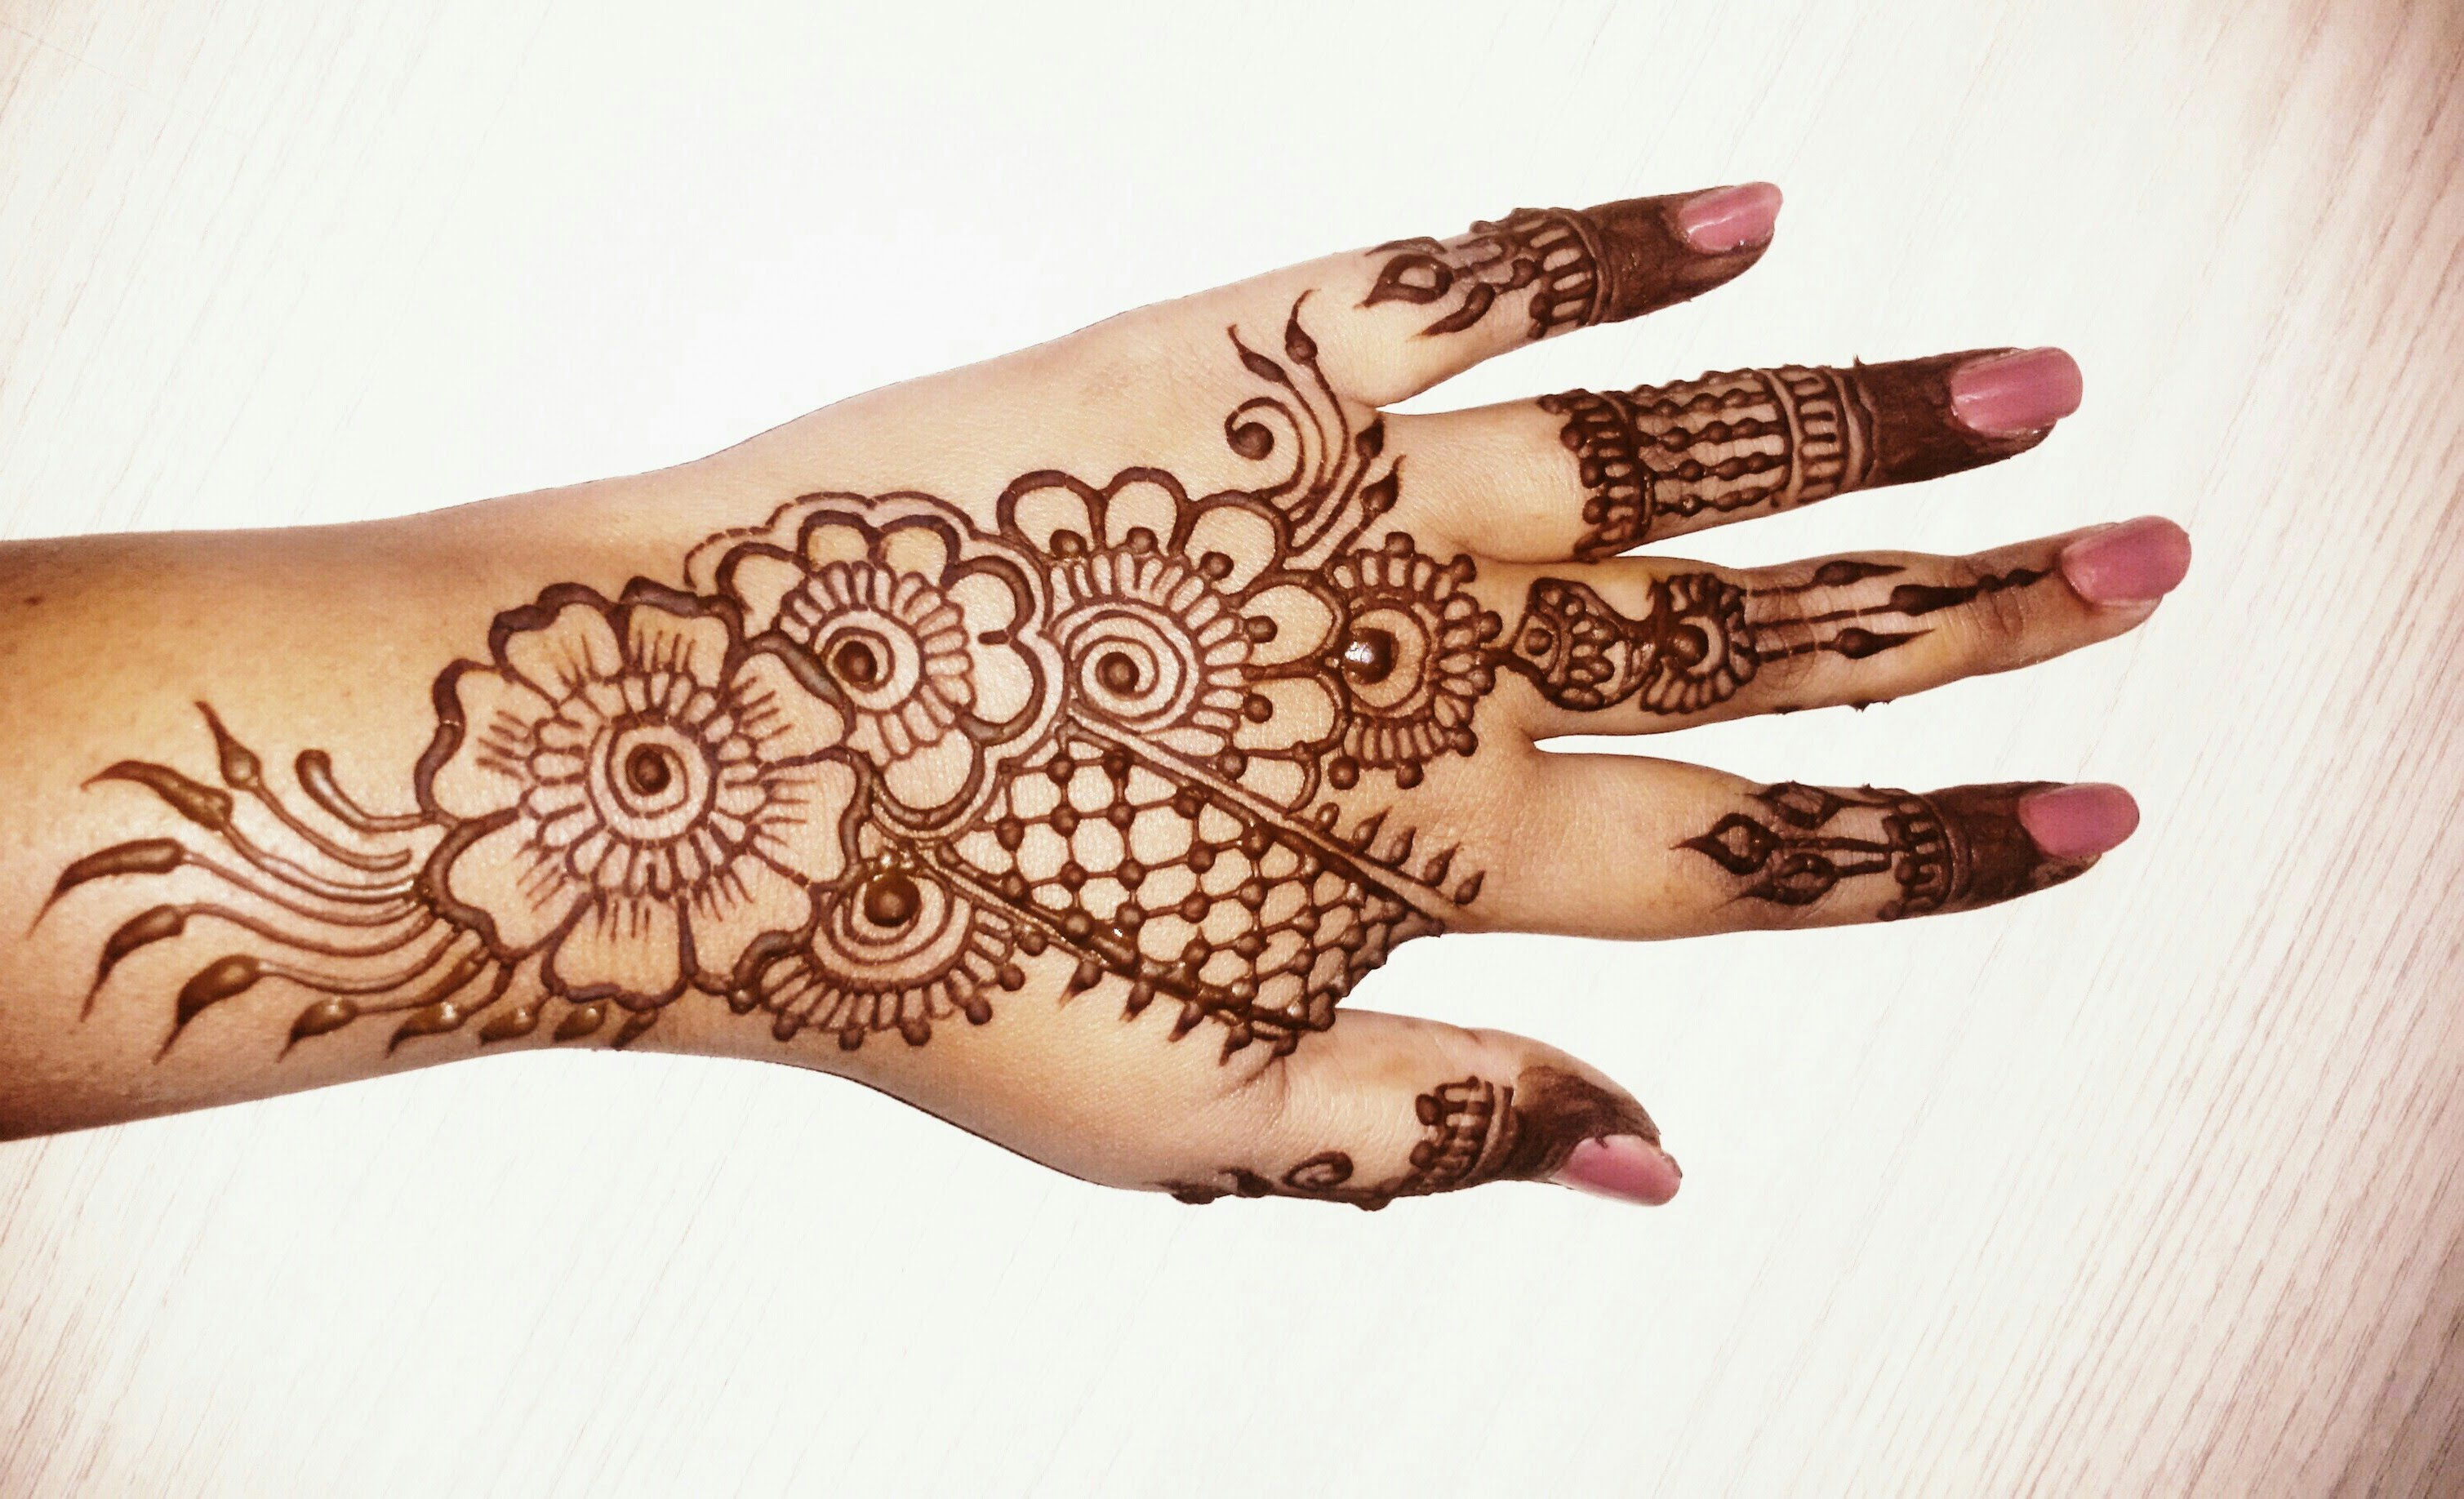 Mehndi Designs Simple : 50 simple mehndi designs collection 2018 how to draw them at home